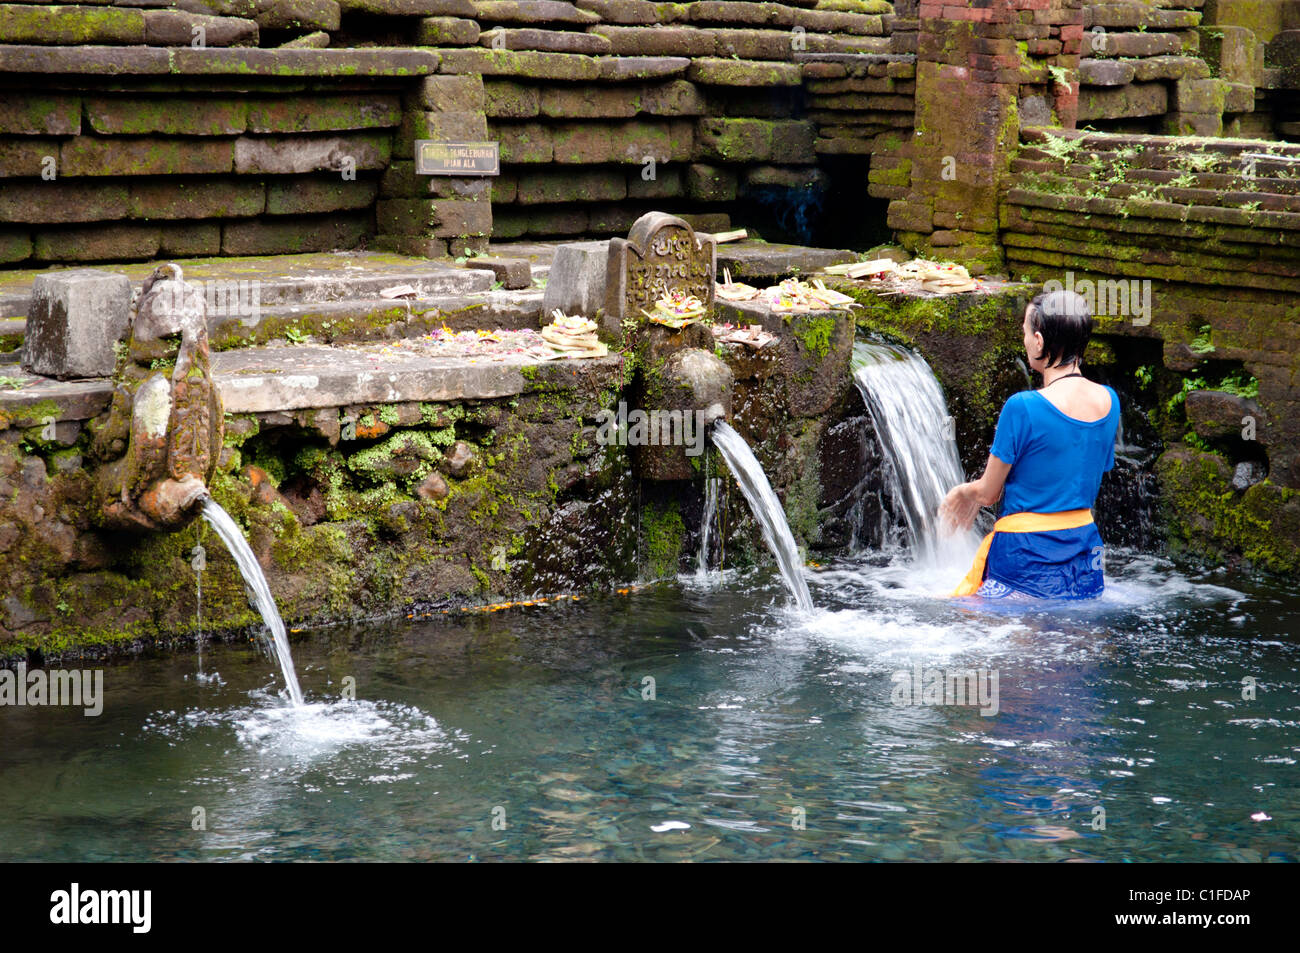 Hindu purification ritual, in a indonesian temple - Stock Image